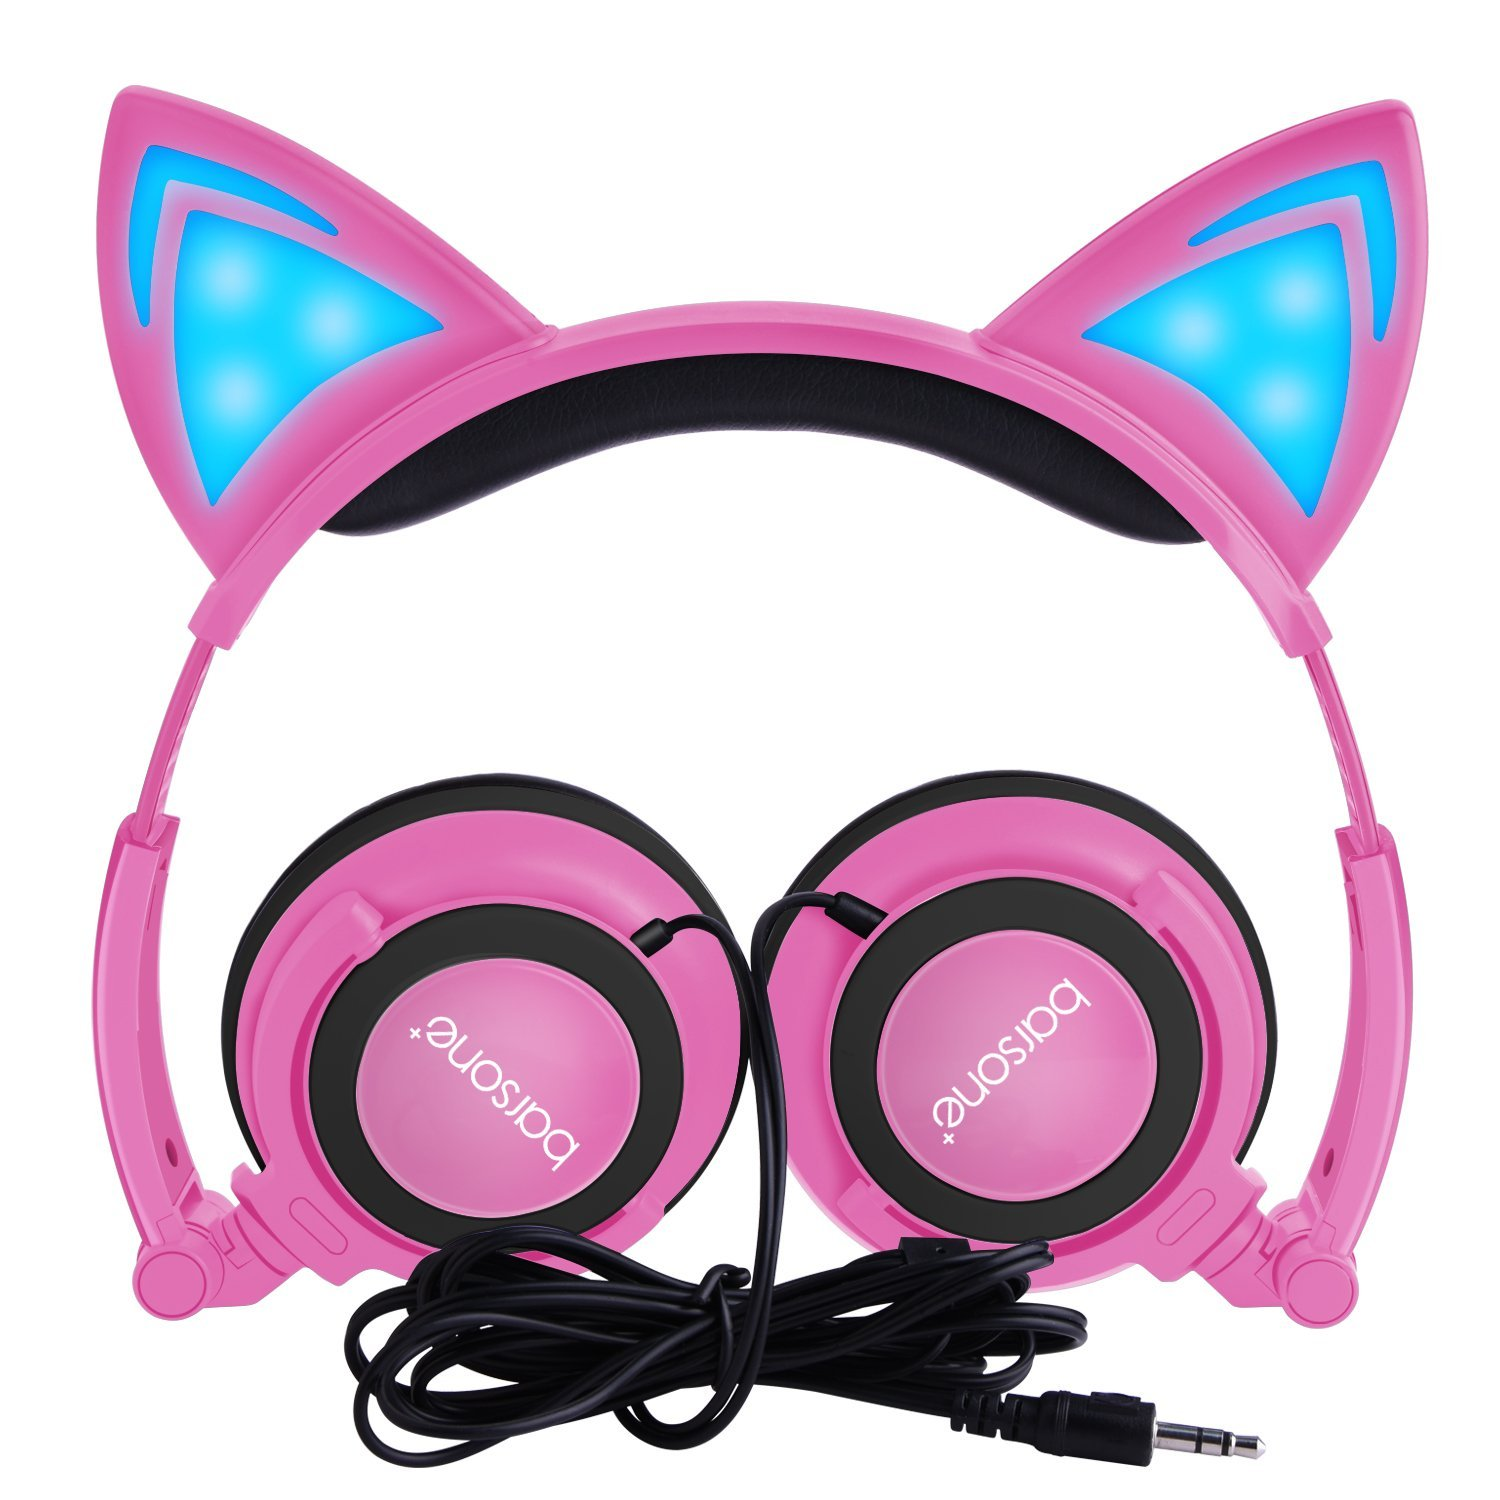 Glow Light Kitty Headphones